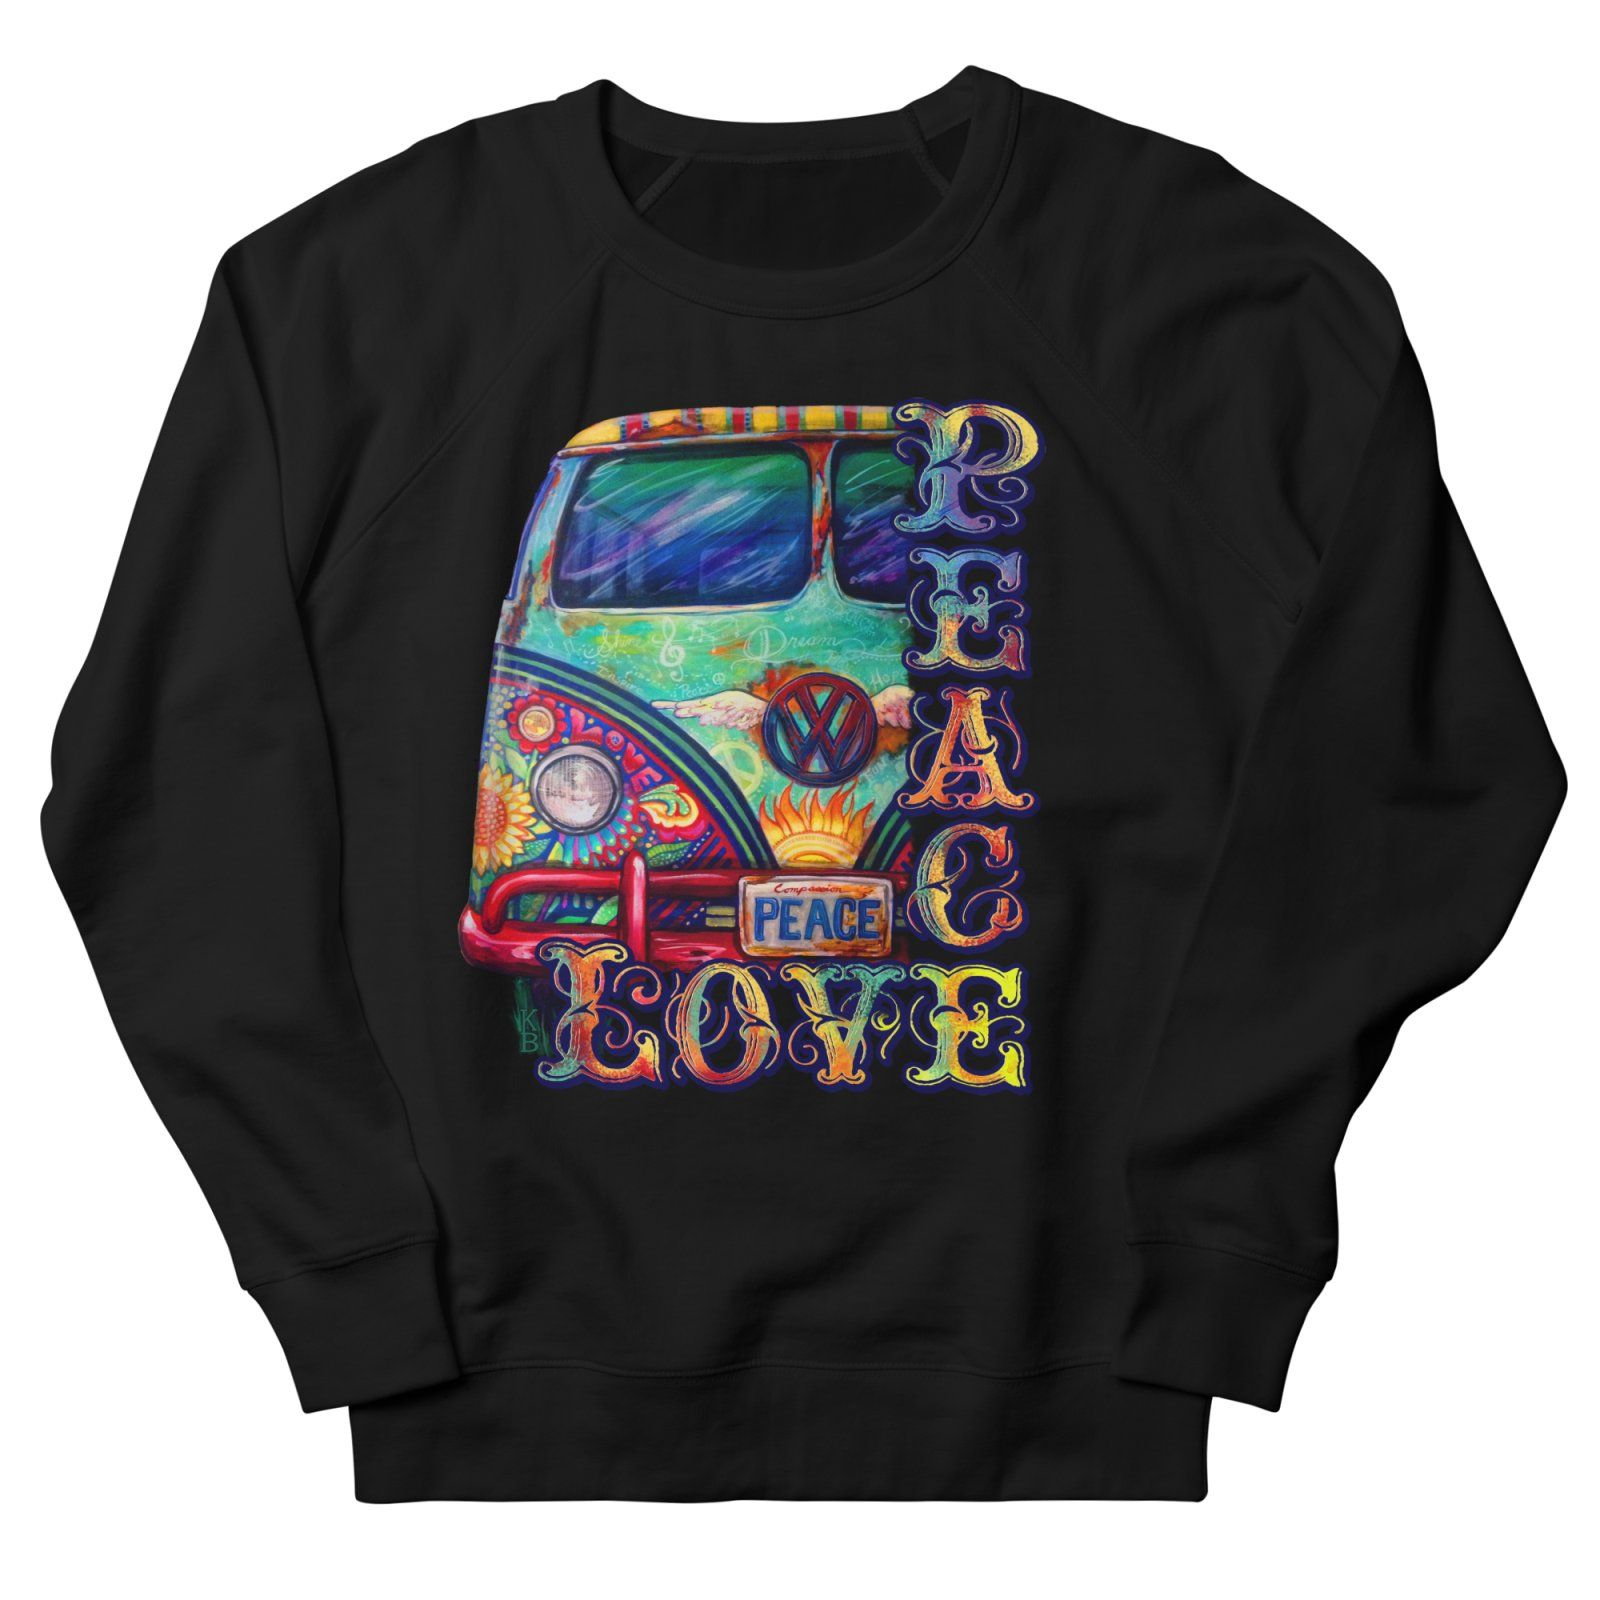 Peace and Love Sweatshirt AL15F1